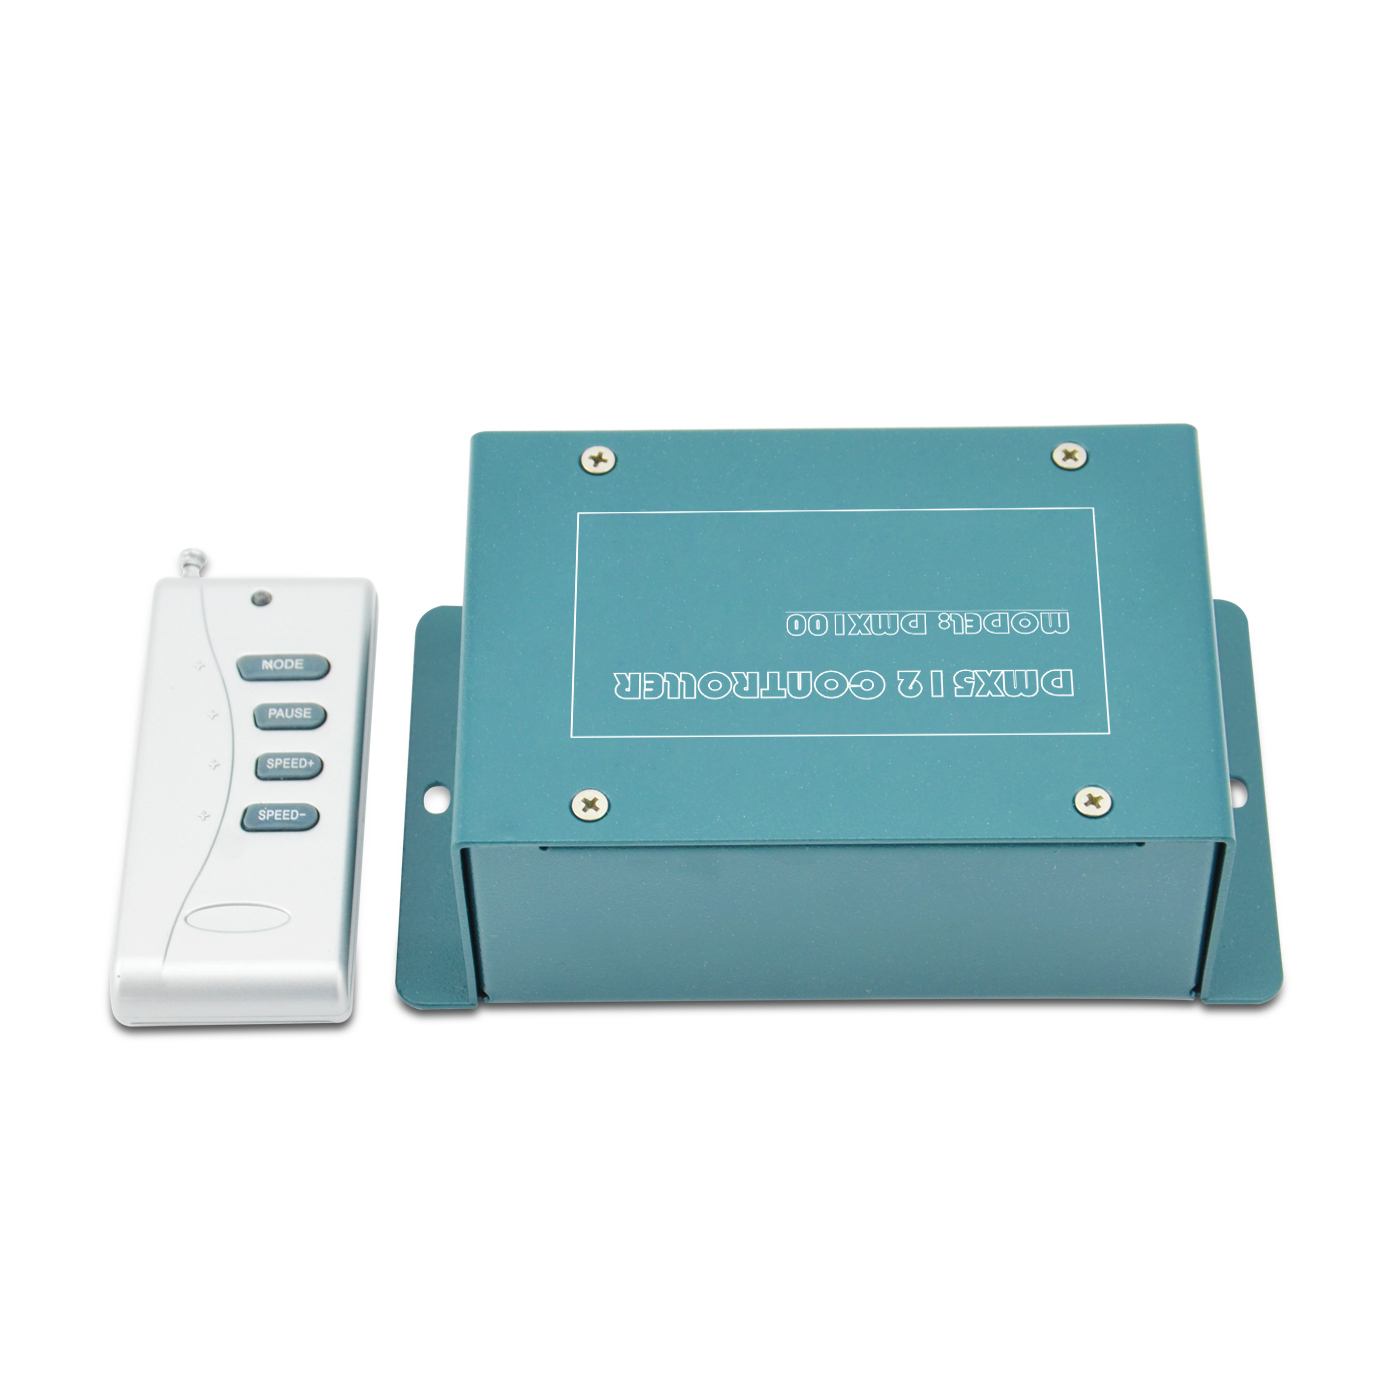 One of Hottest for 10v Dimmable Led Driver -